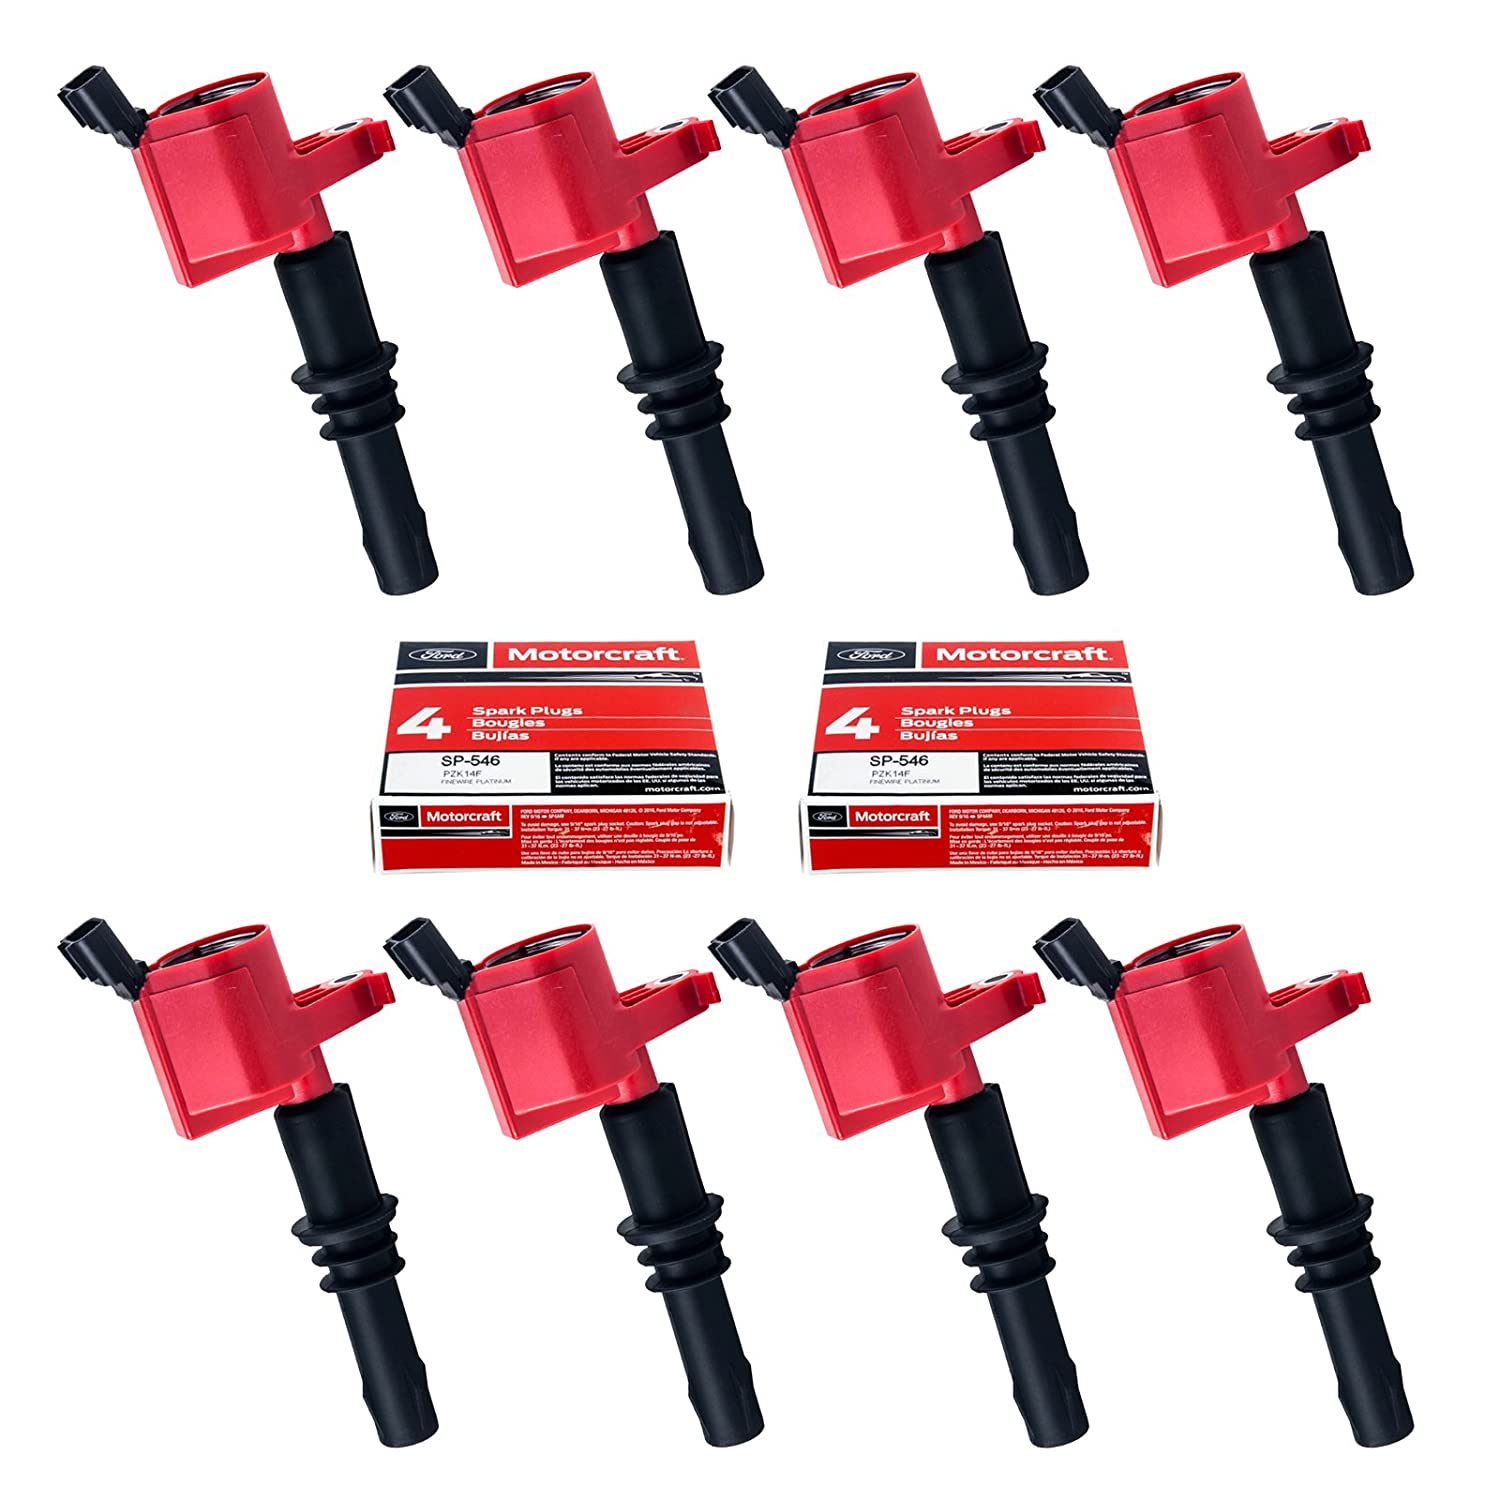 Set of 8 Motorcraft SP515 SP546 Spark Plugs & 8 Red Straight Boot Ignition Coils DG511 for Ford Lincoln Mercury V8 V10 4.6l 5.4l 6.8l Compatible with 3L3E12A366CA 5C1584 C1541 FD-508 DG511 RED DG-511 King Auto Parts